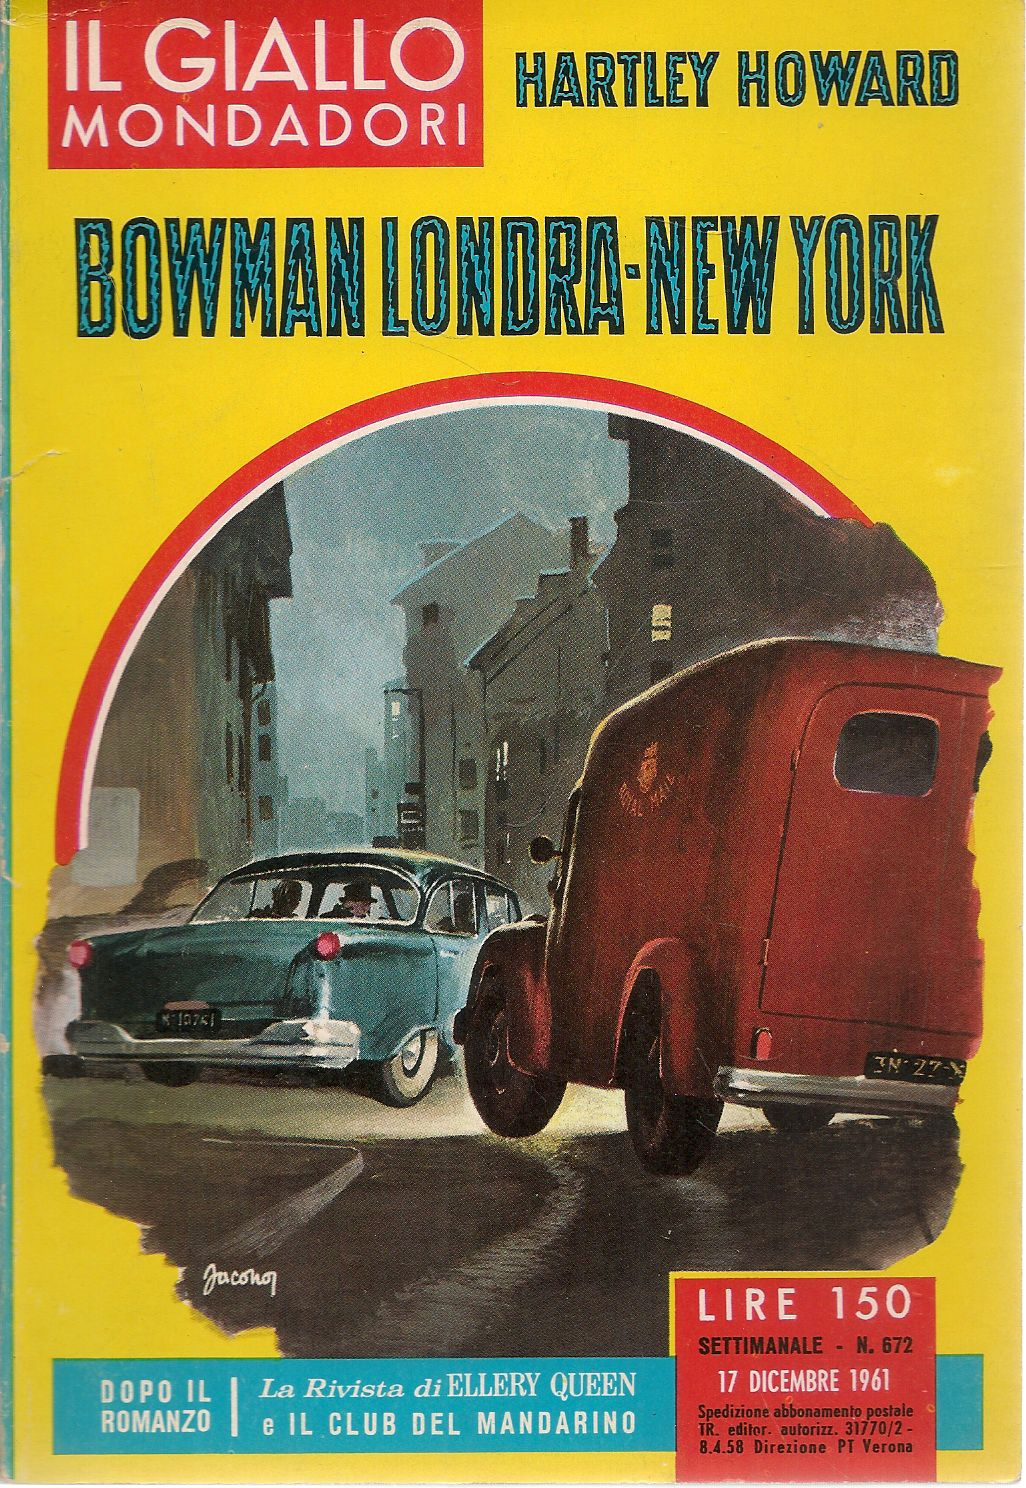 BOWMAN LONDRA-NEW YORK - HARTLEY HOWARD - IL GIALLO MONDADORI N. 672